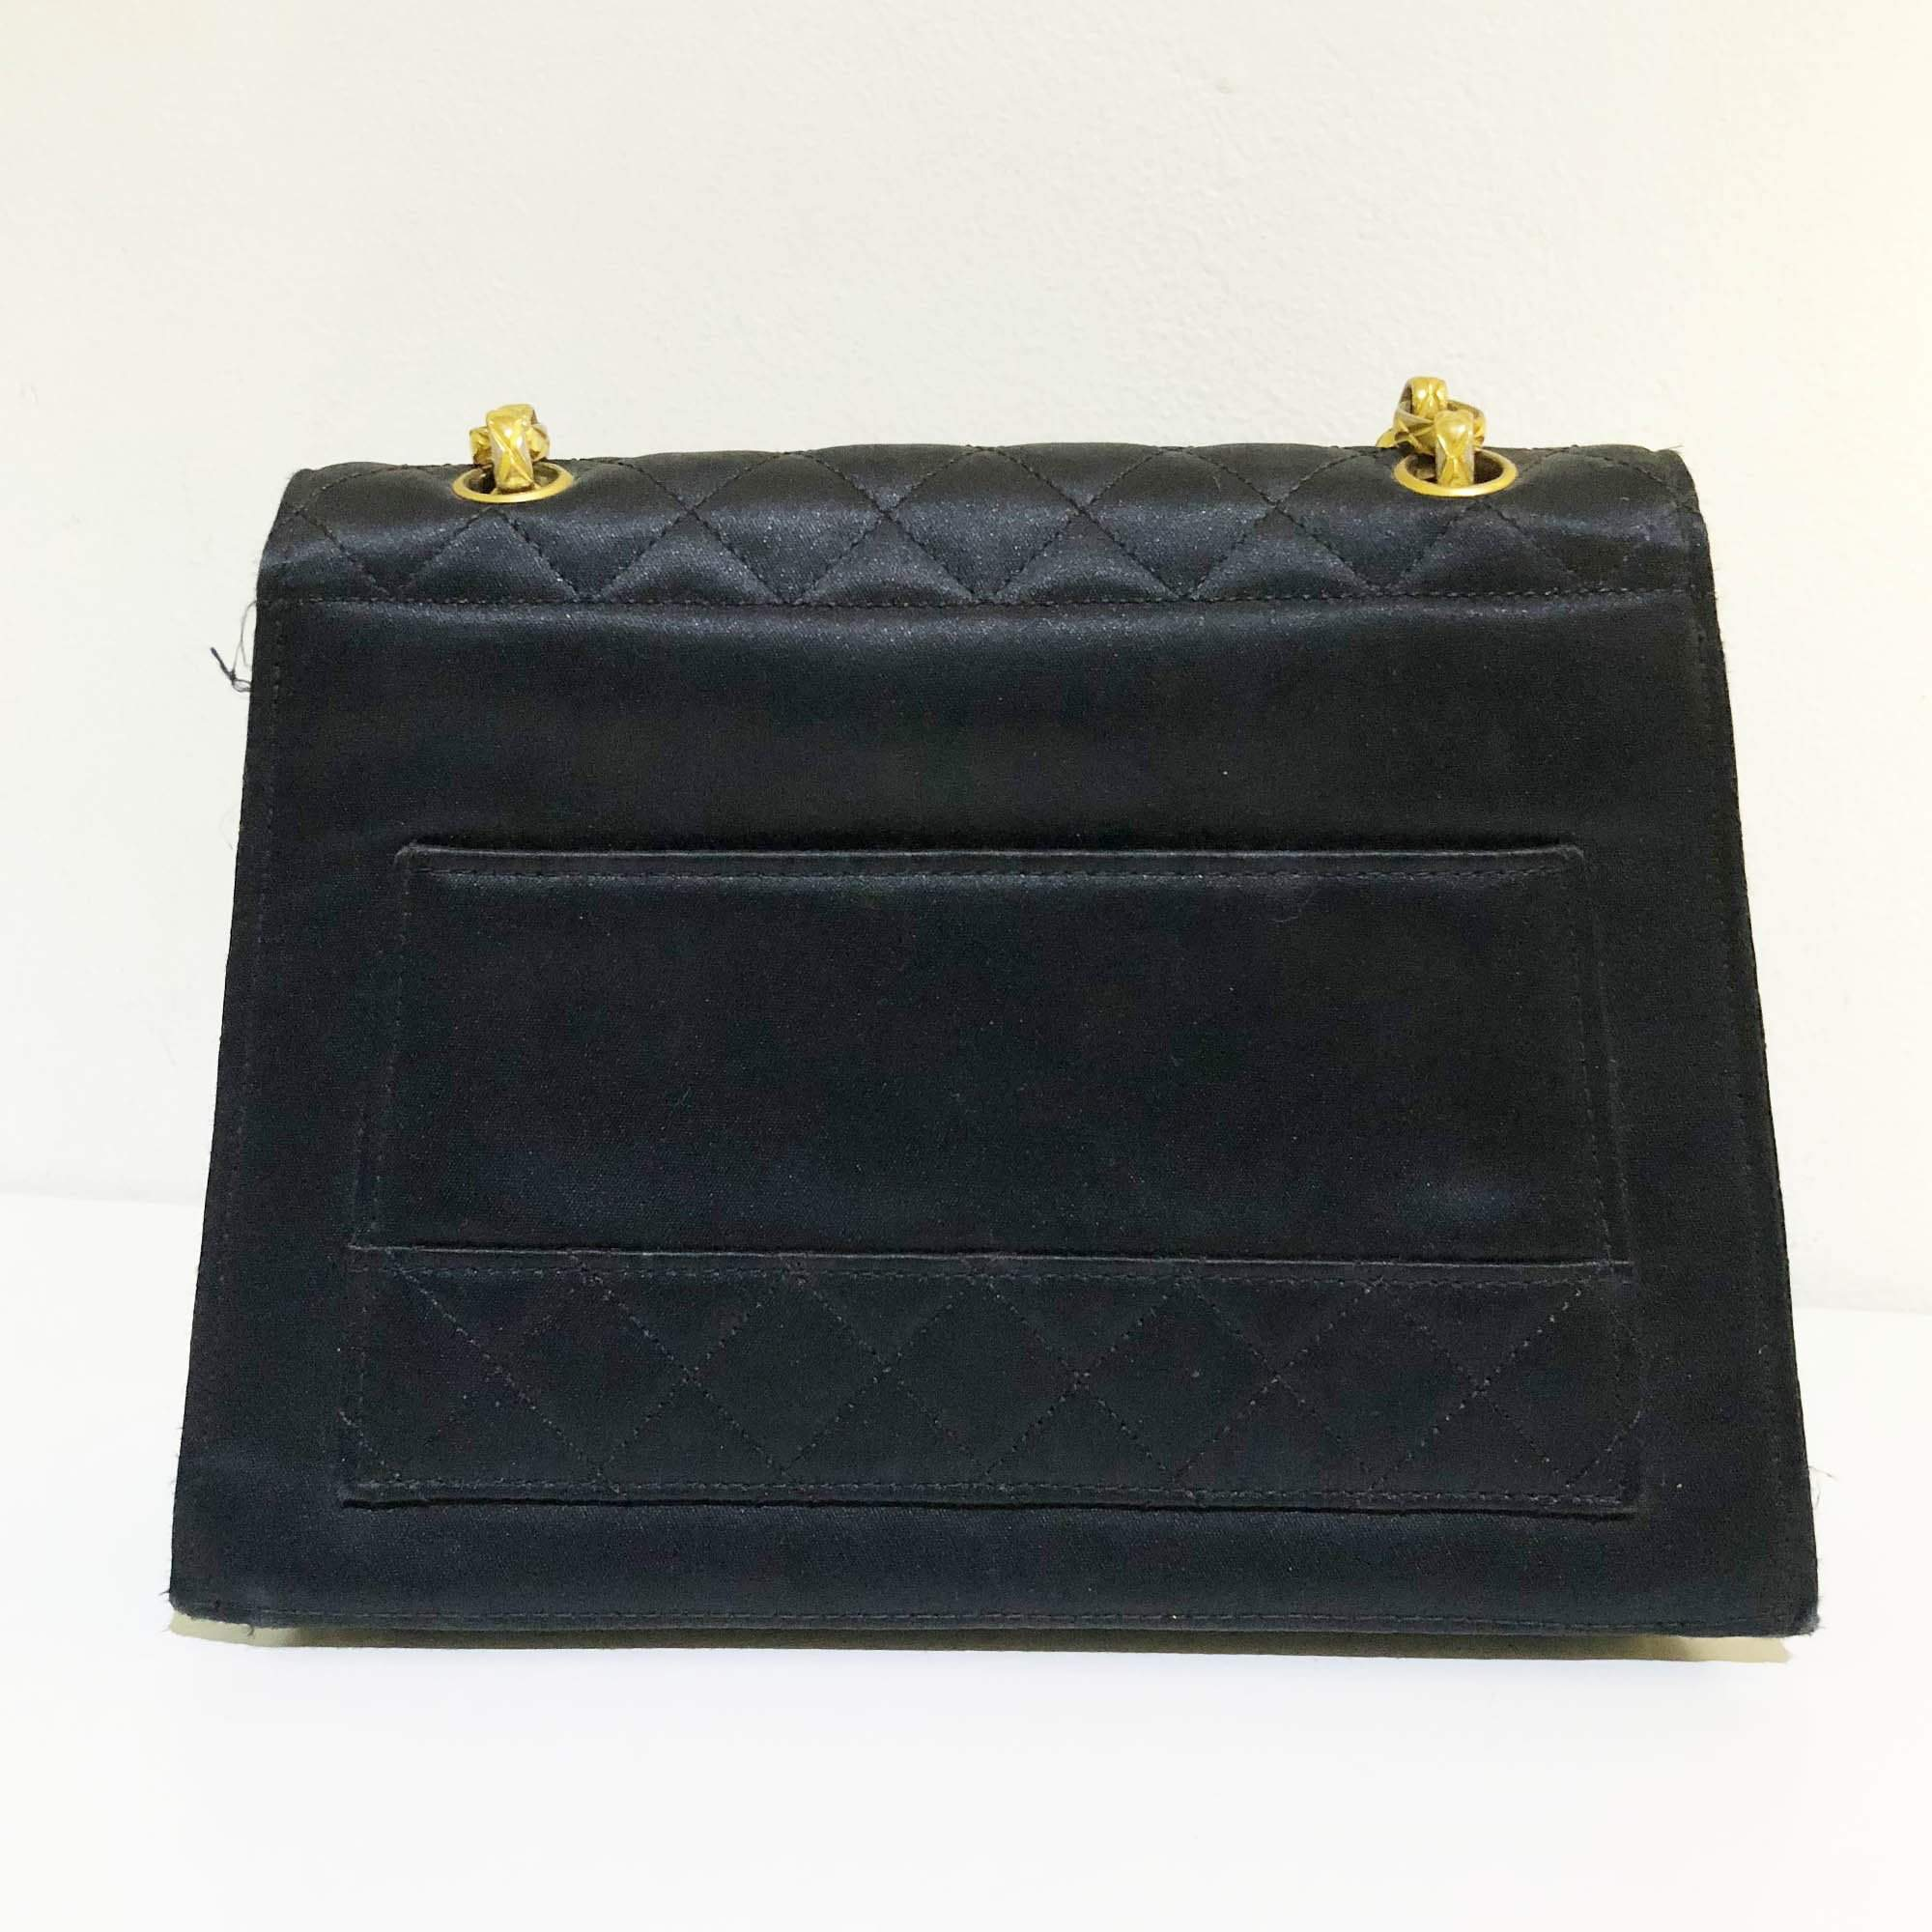 Chanel Vintage Satin Black Flap Cross Body Bag